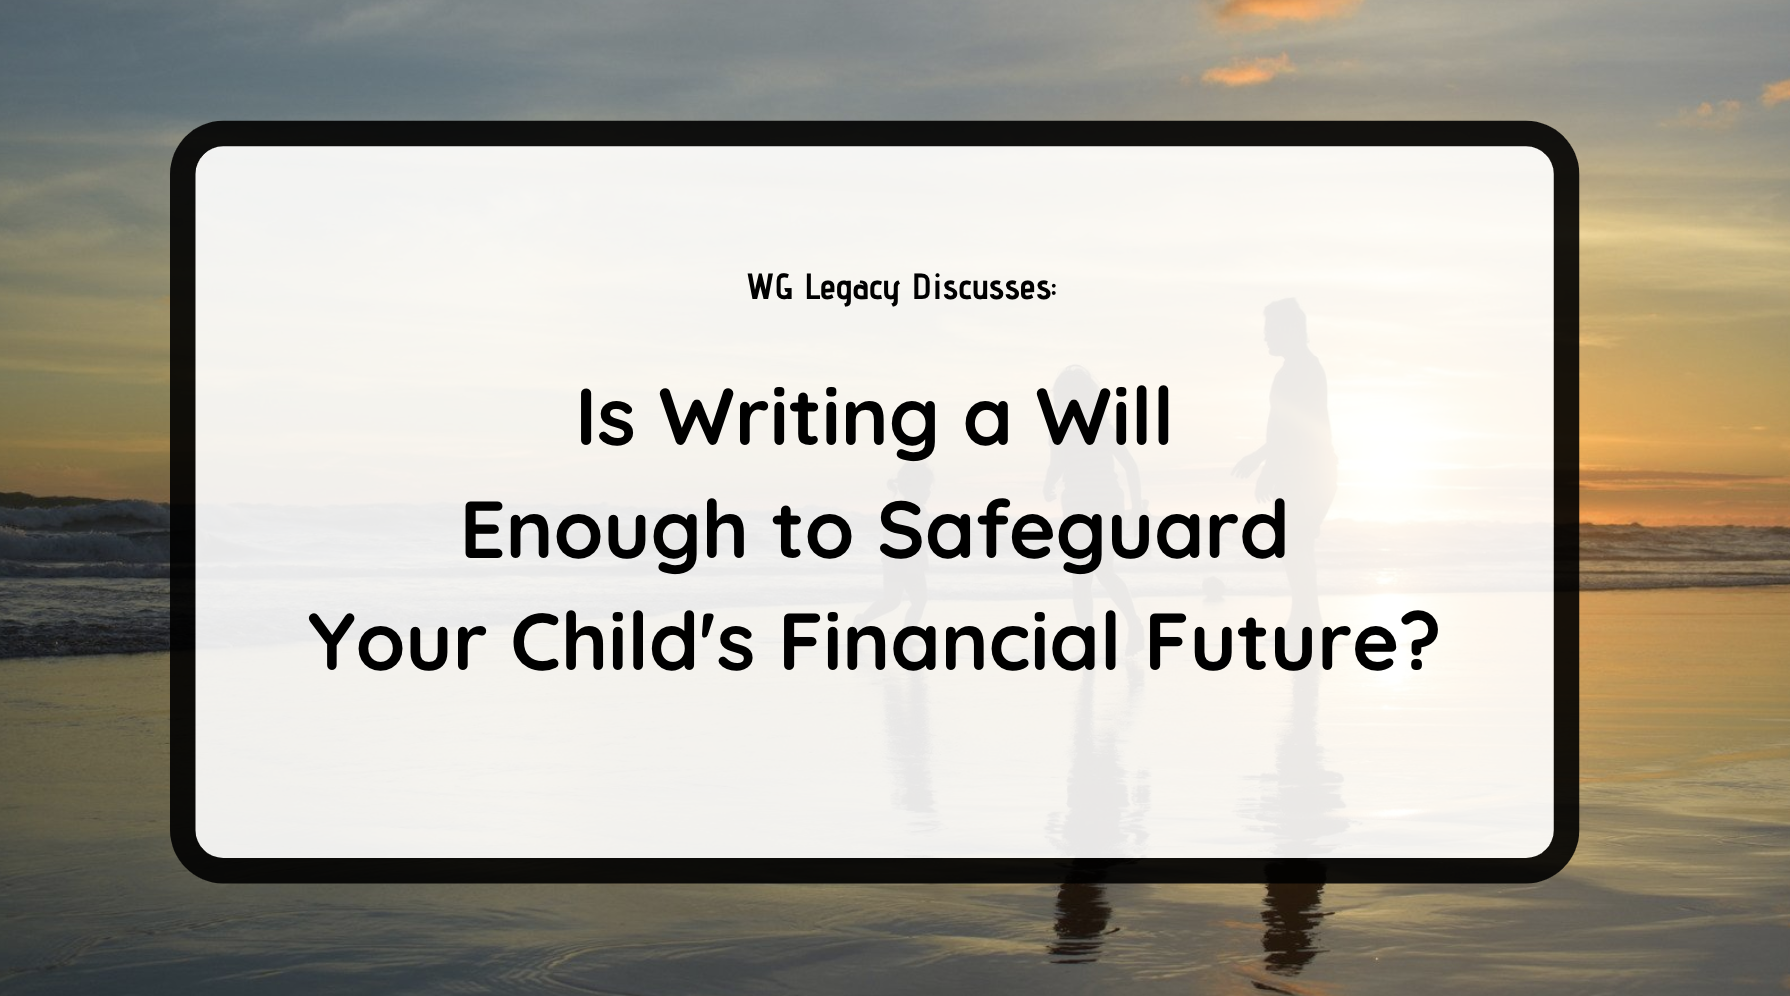 Is Writing a Will Enough to Safeguard Your Child's Financial Future?